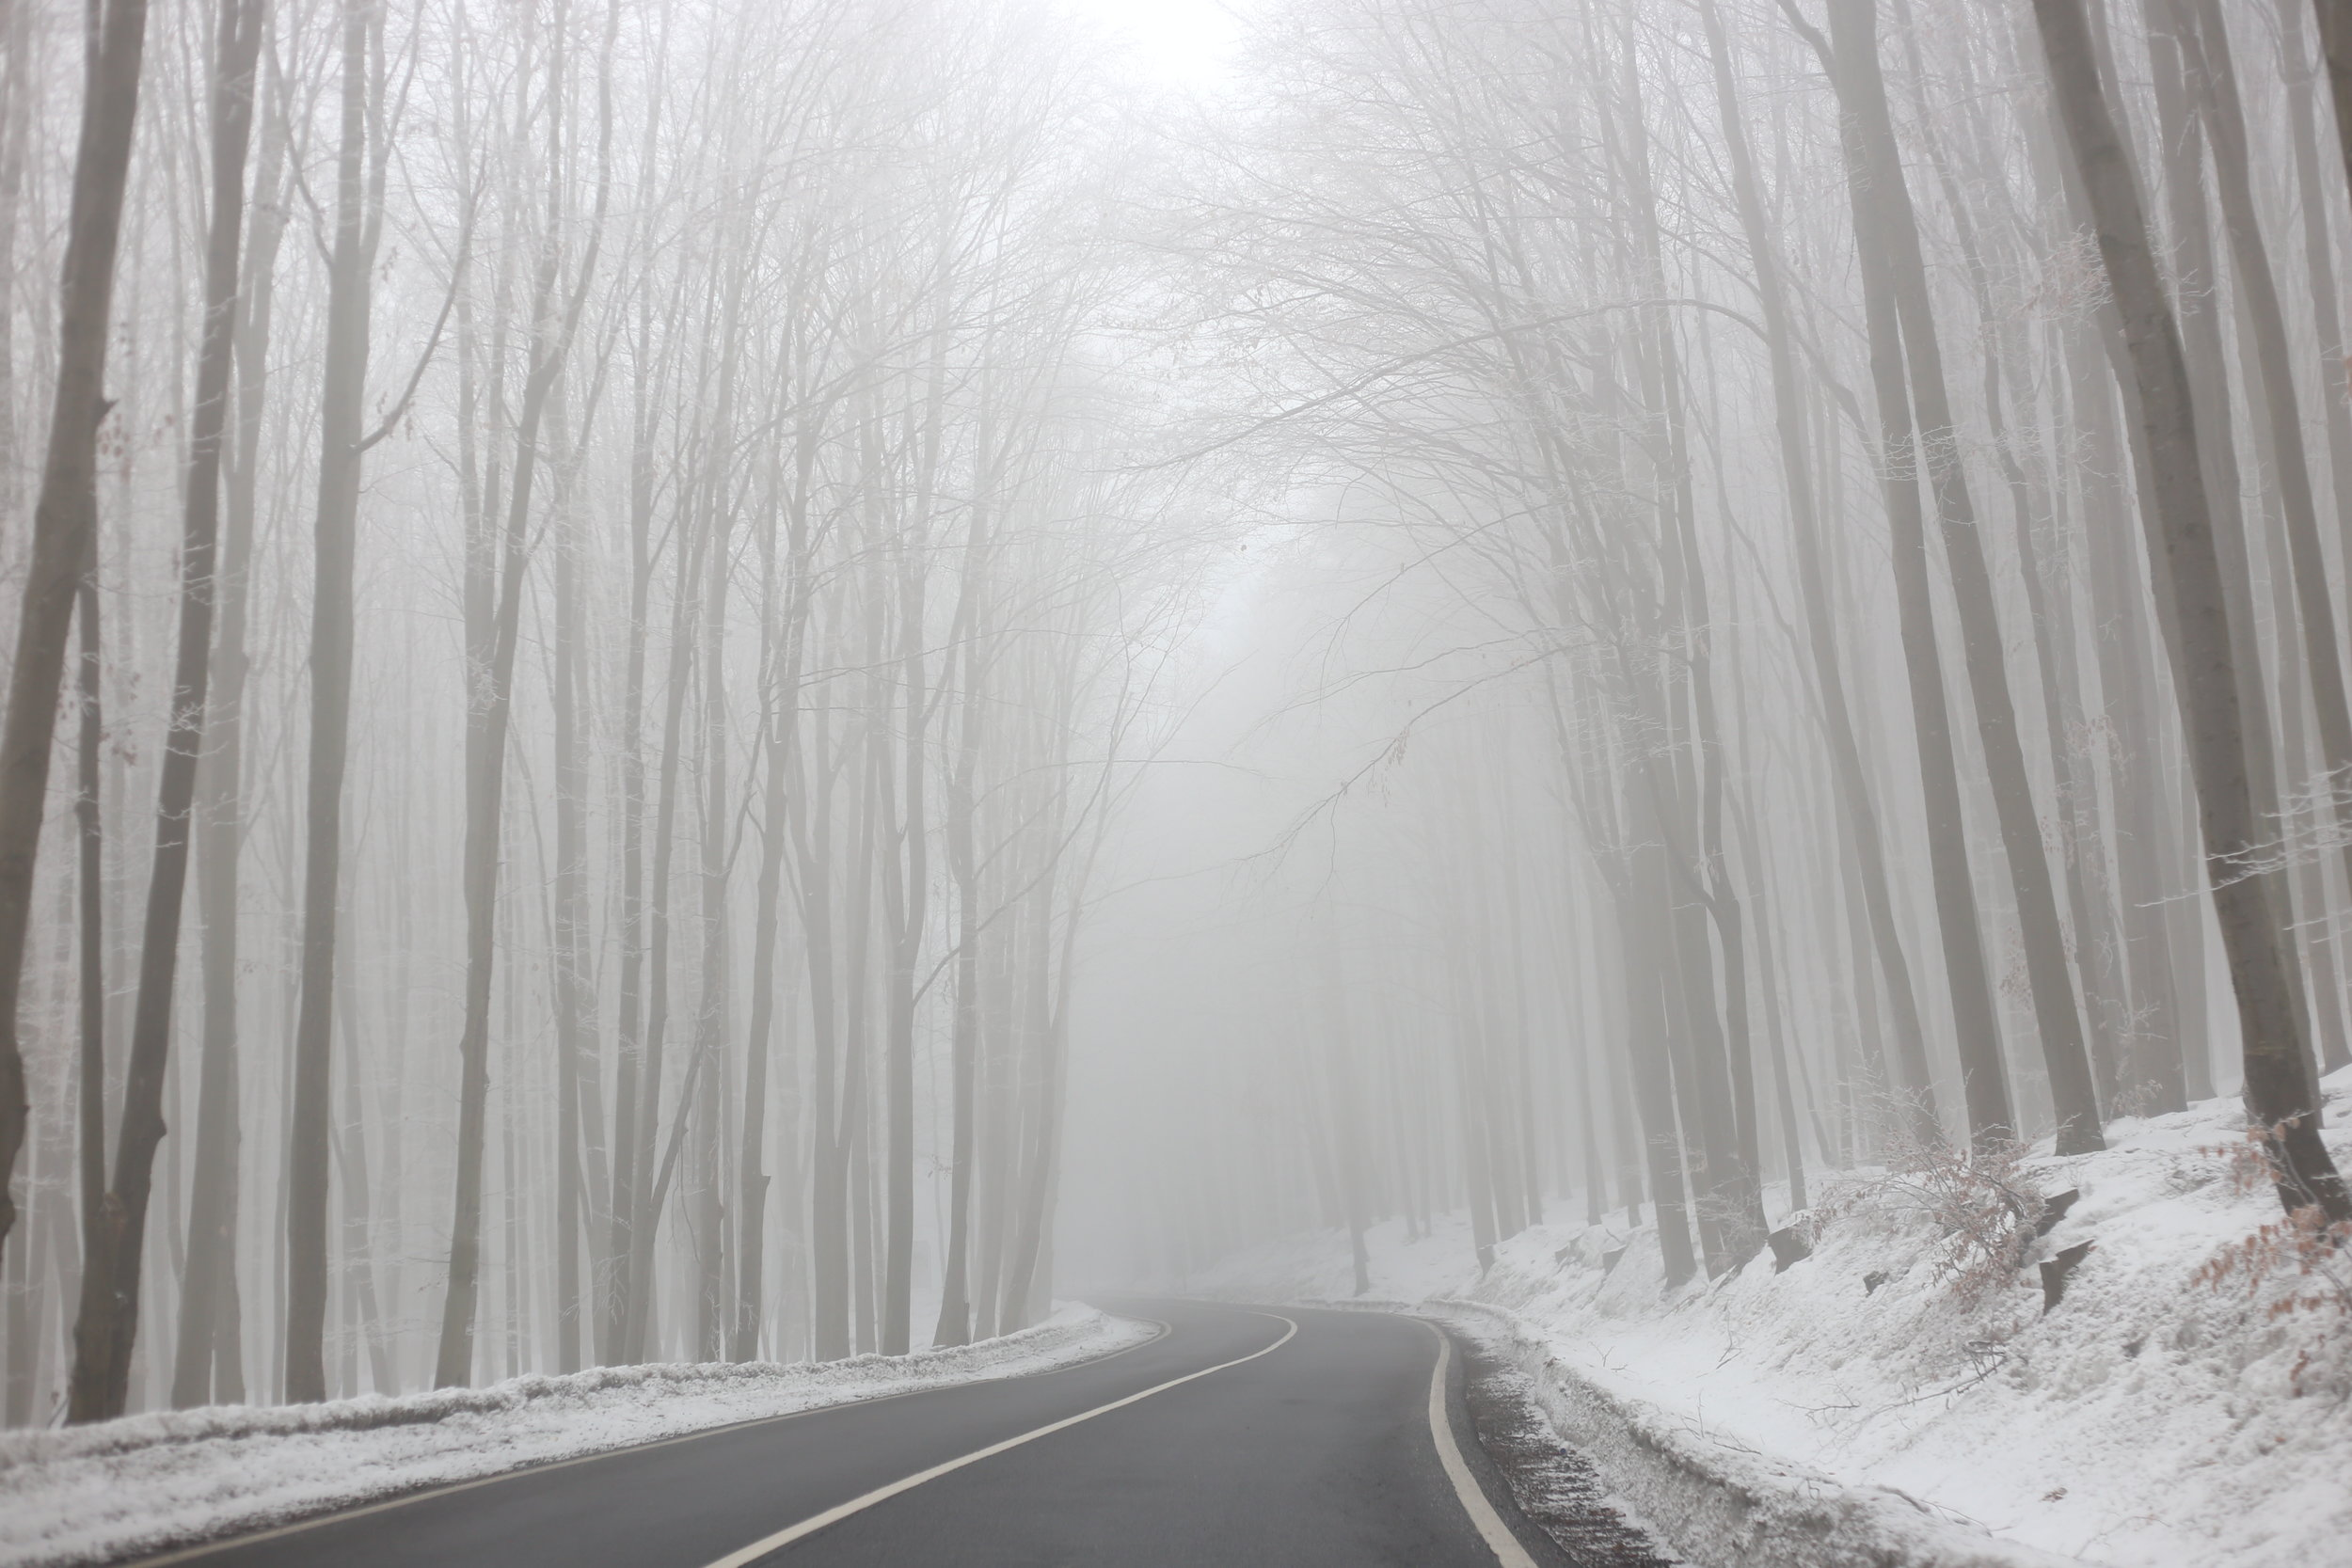 Road through an enchanted wood, in winter.